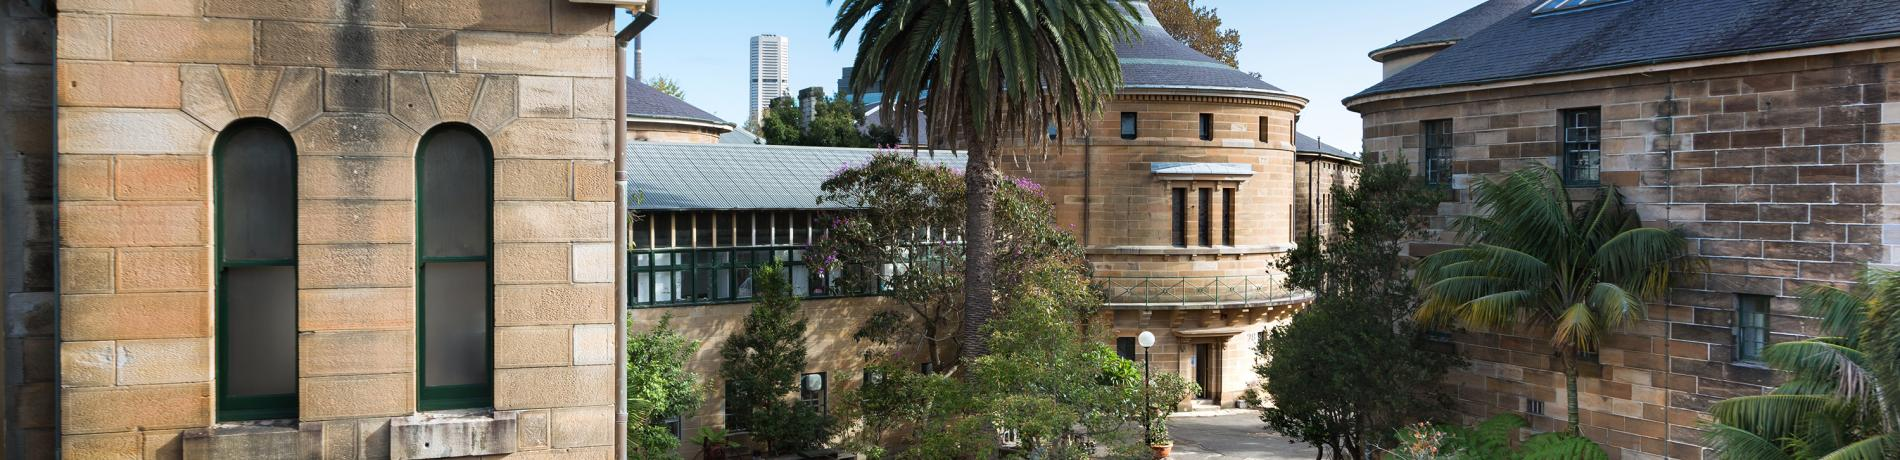 National Art School Campus Photo Chris Philips